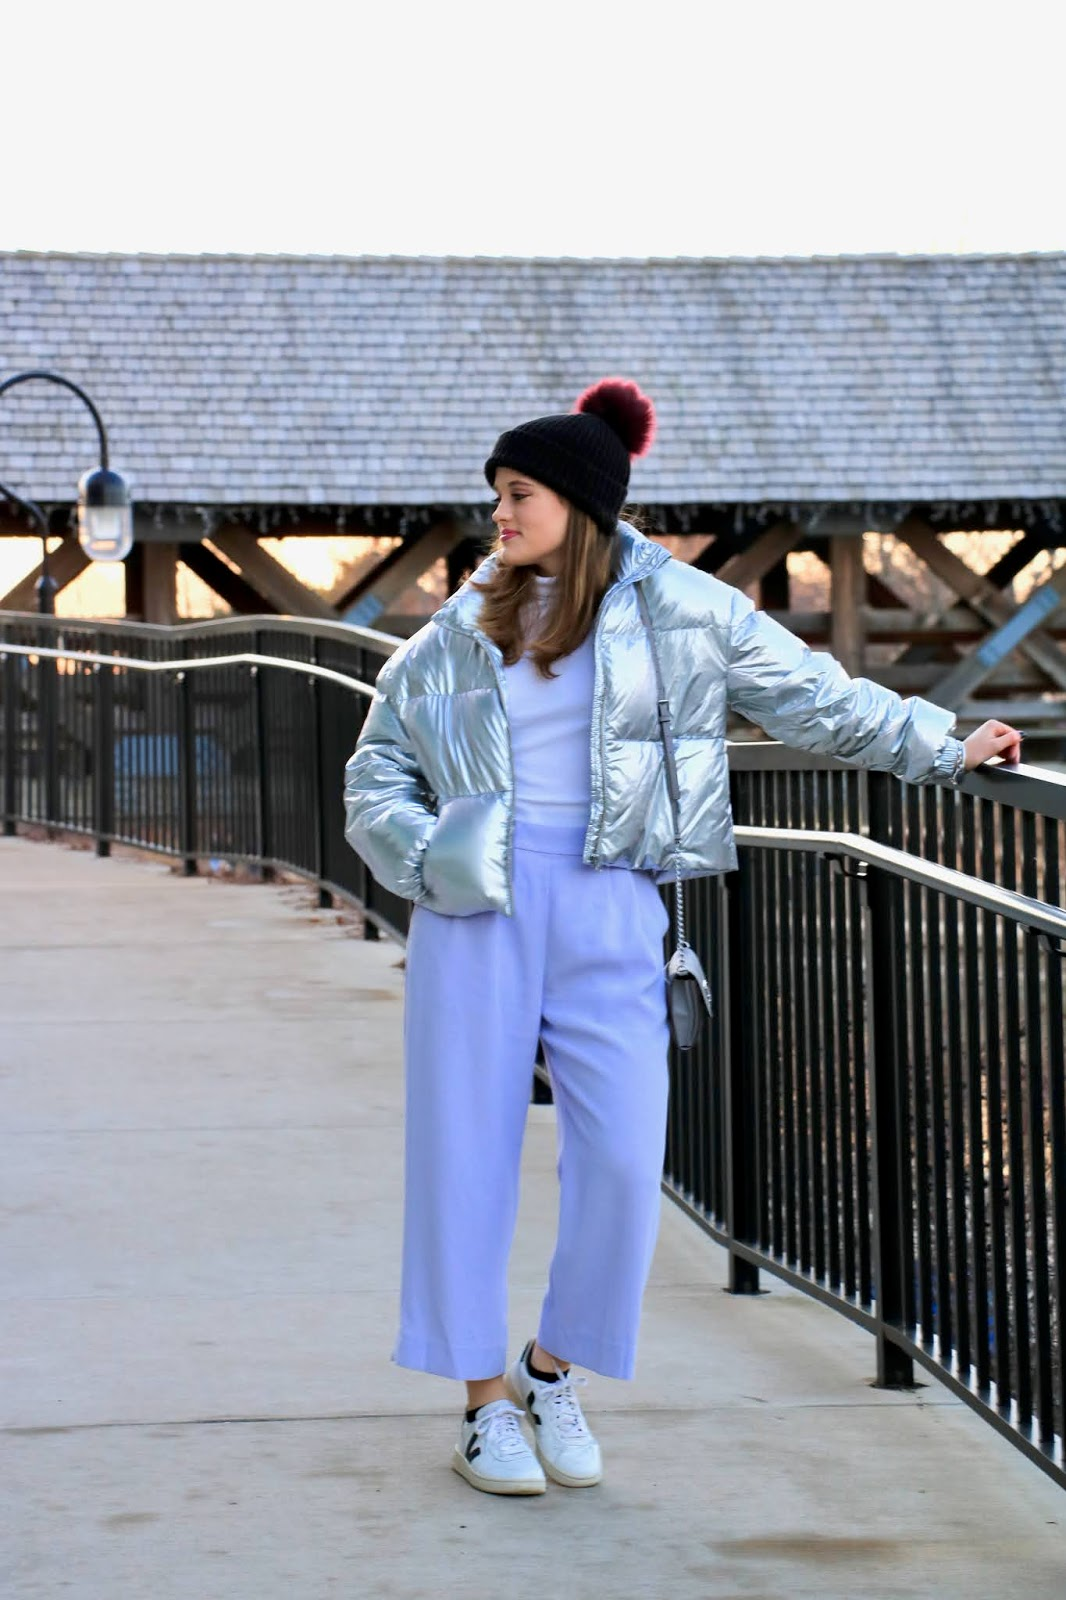 Nyc fashion blogger Kathleen Harper wearing a white turtleneck outfit.